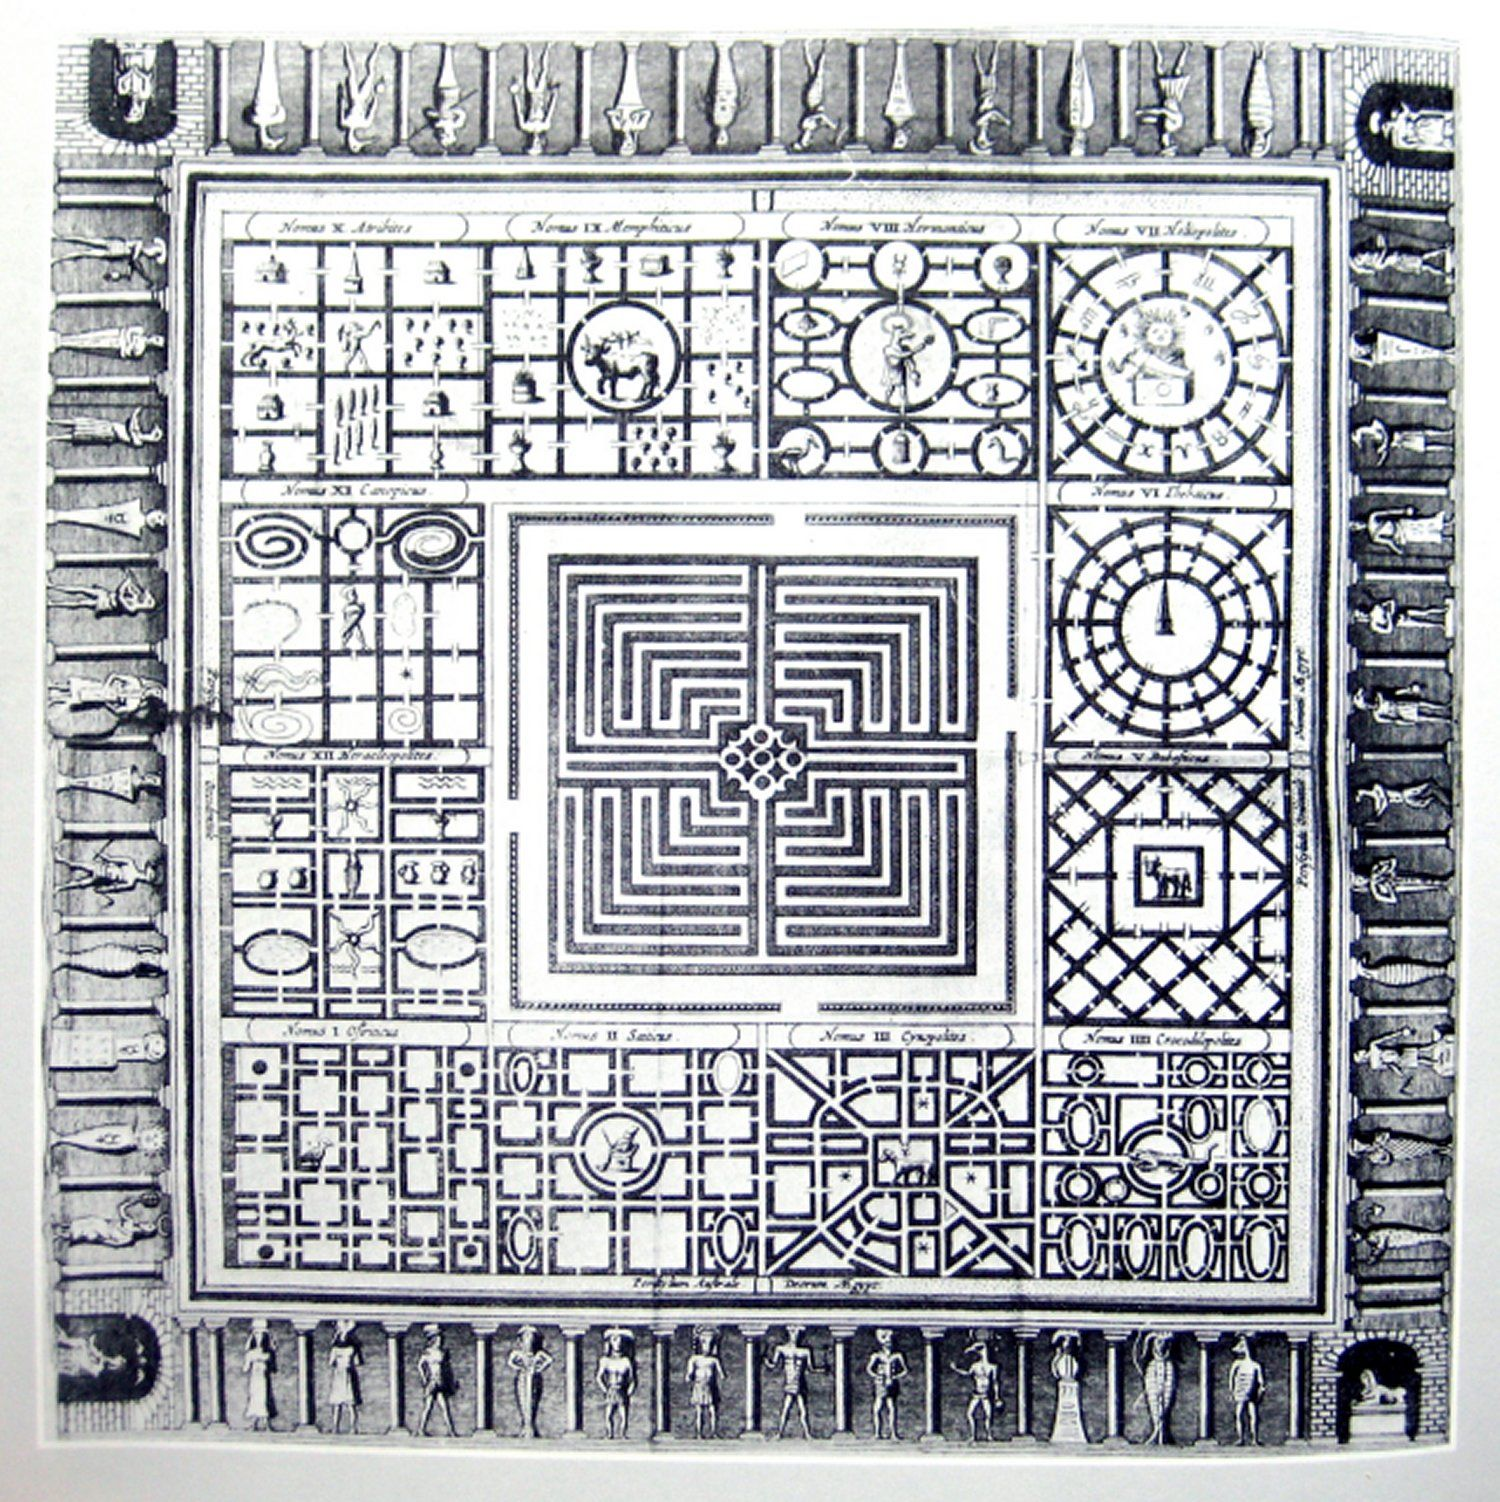 Reconstruction of the Egyptian labyrinth by Athanasius Kircher ...